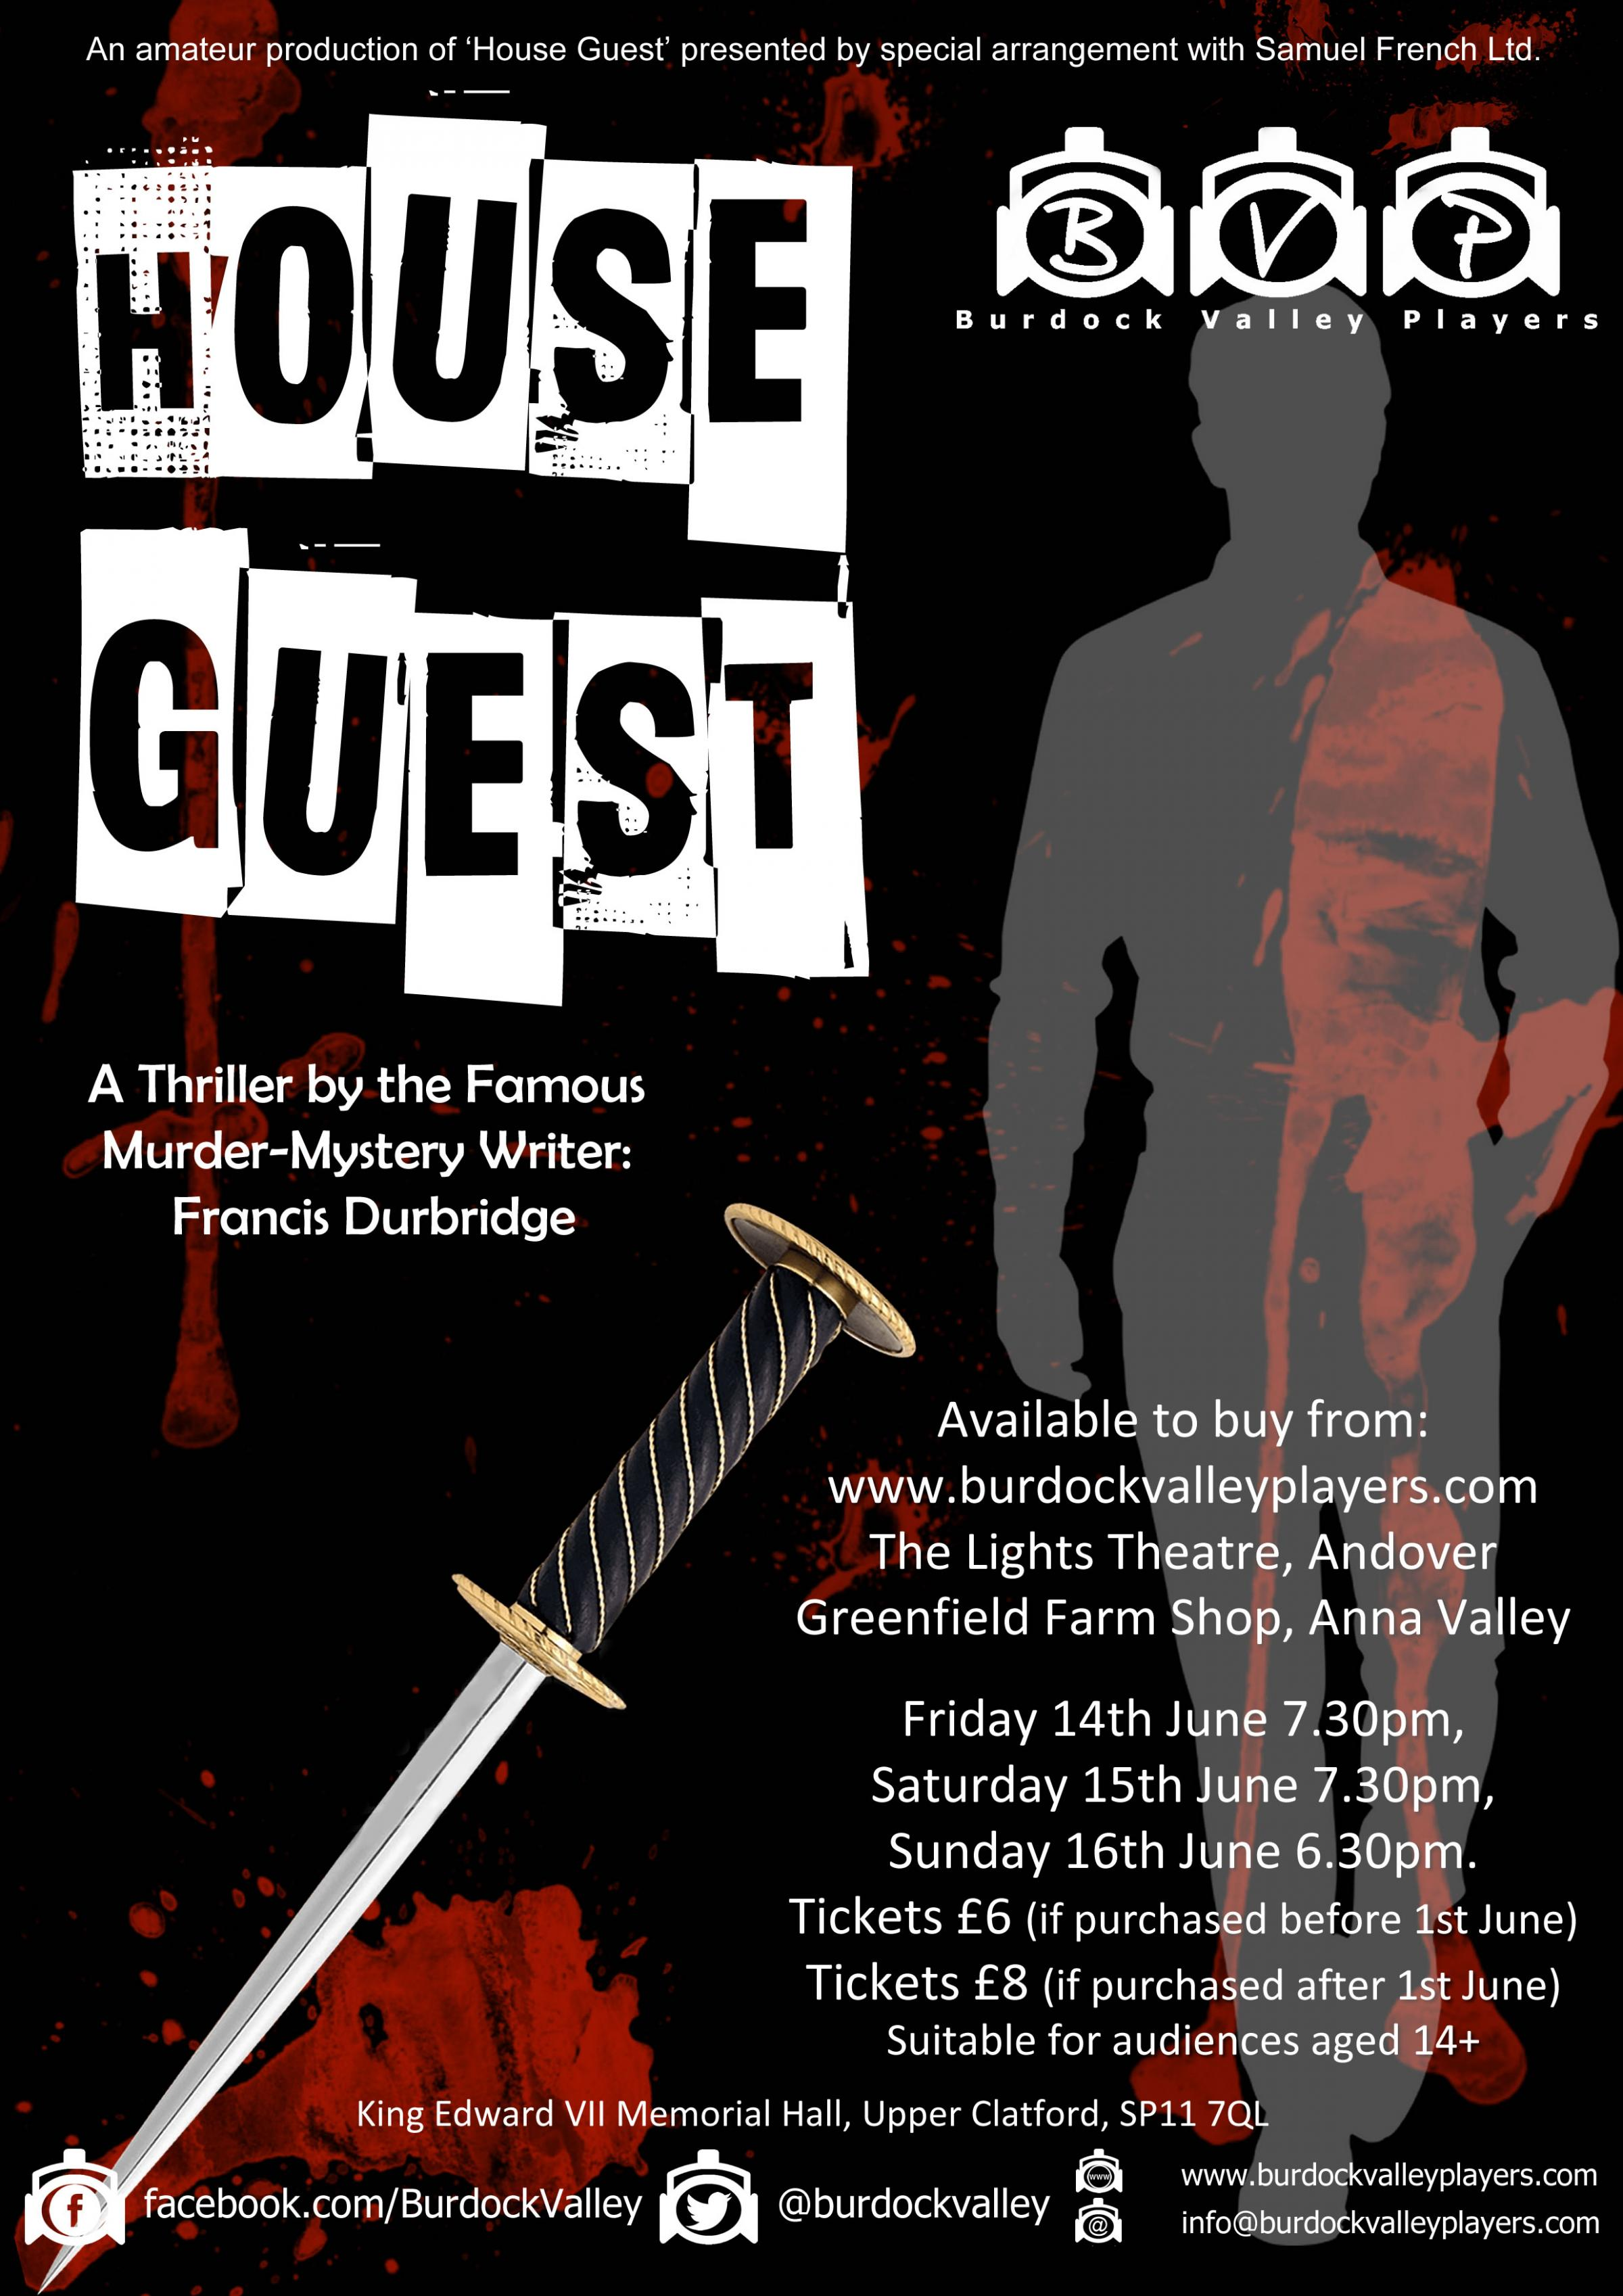 House Guest by Francis Durbridge